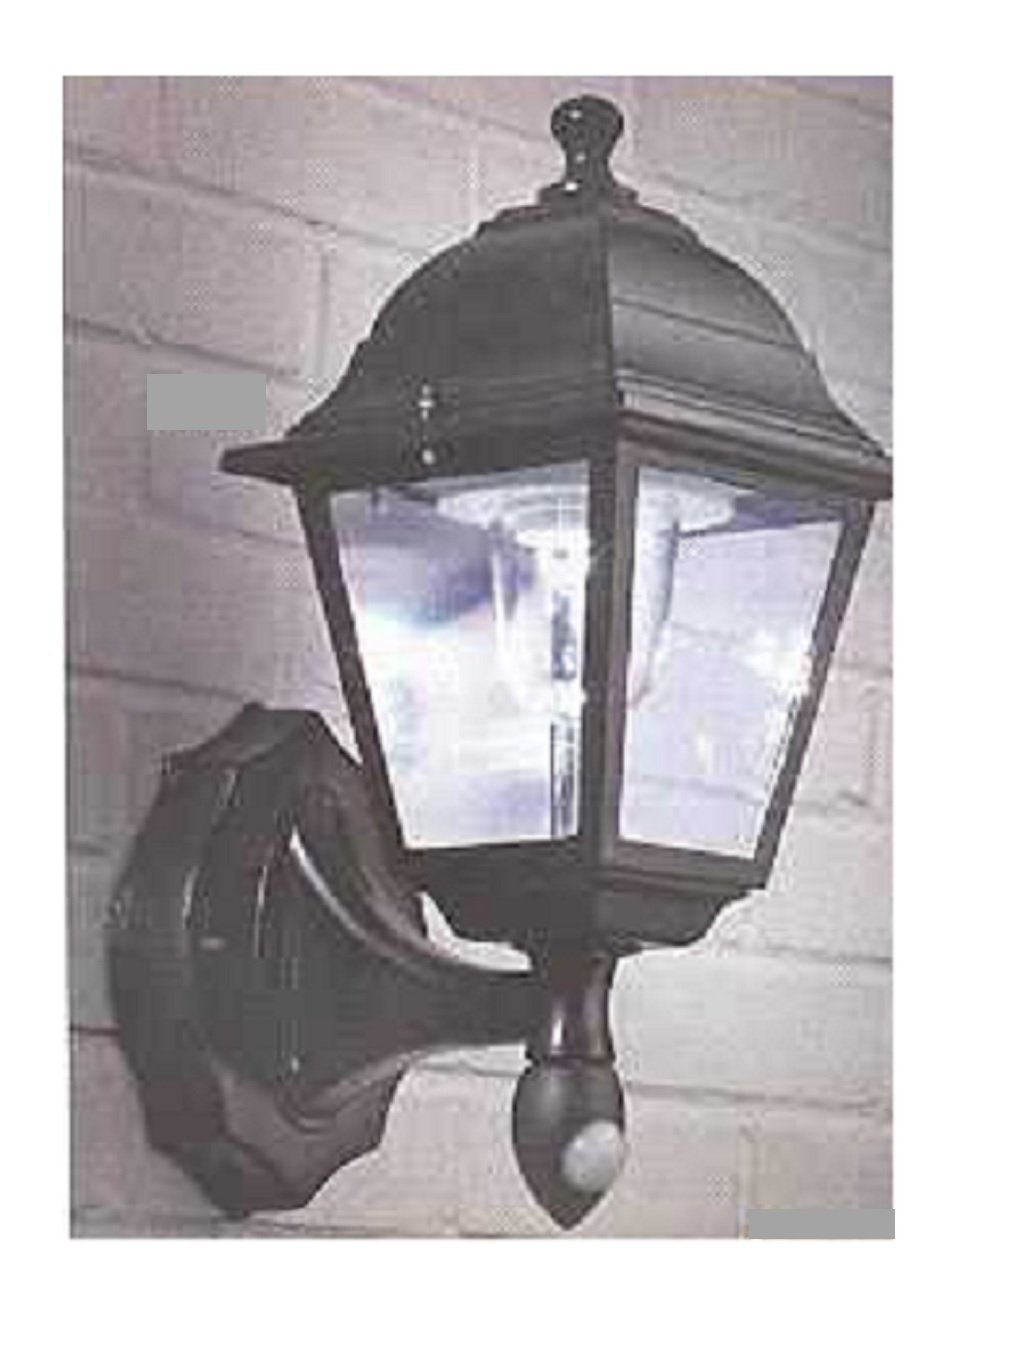 Battery Operated Wall Sconce Lighting Trenton Gifts Wireless Outdoor Battery Powered Led Wall Sconce Motion Activated Perfect For Outdoor Porch Entrance Light Garage And More